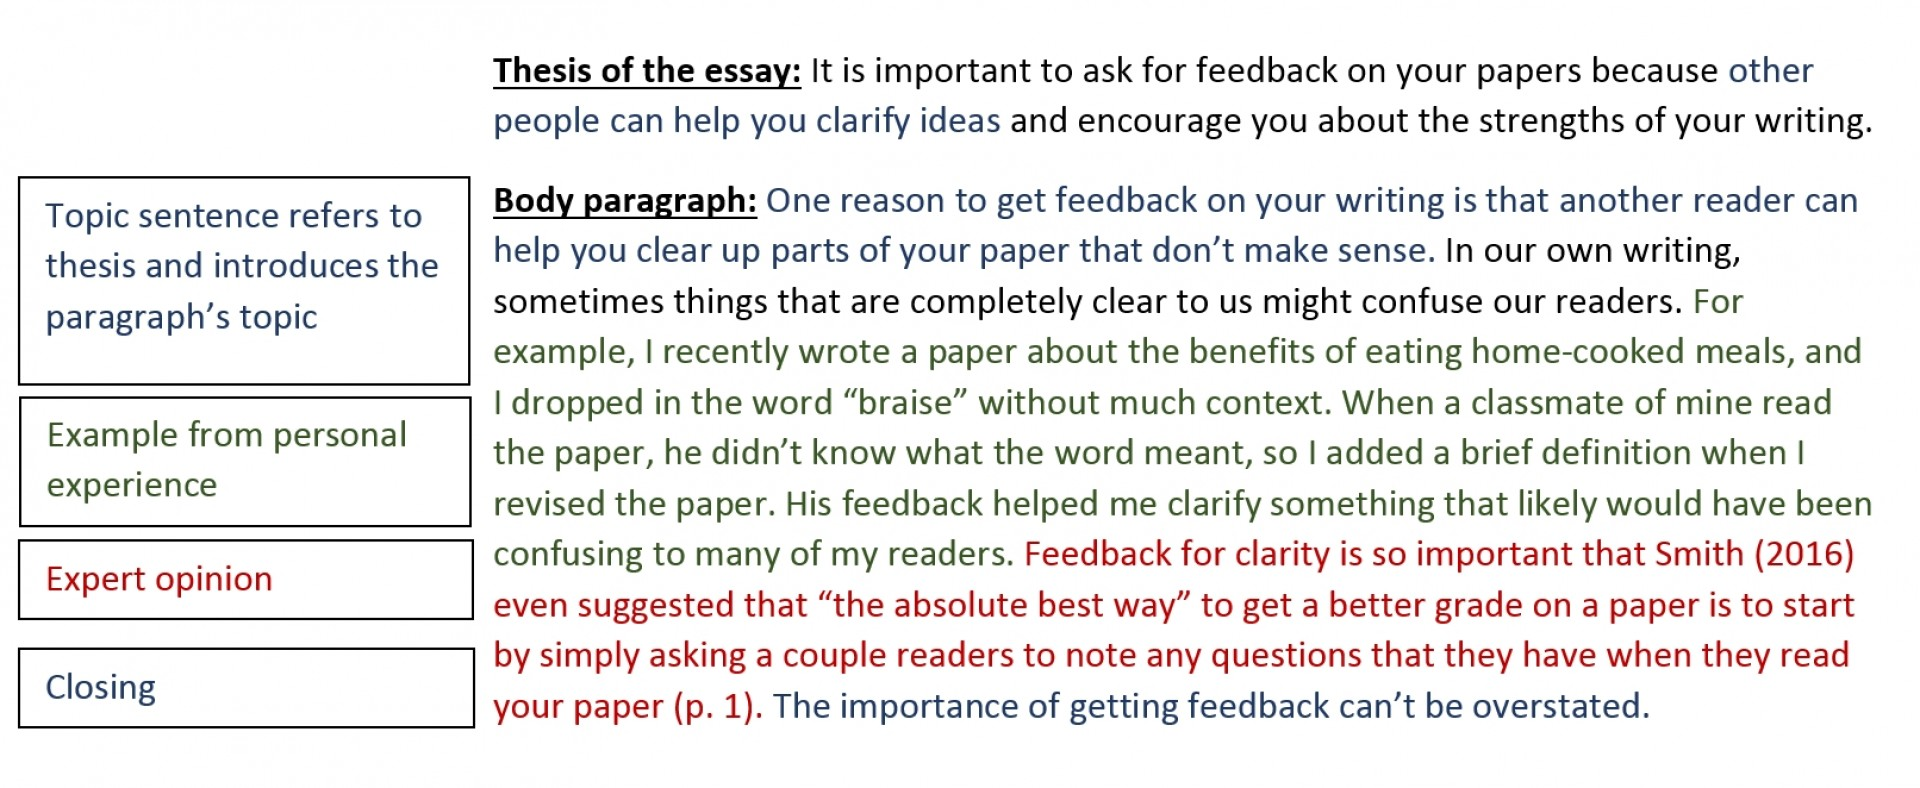 009 Research Paper Example Of Introduction Paragraph In Body Paragraphs Writing Your Guides At Eastern With Regard Excellent A Pdf 1920